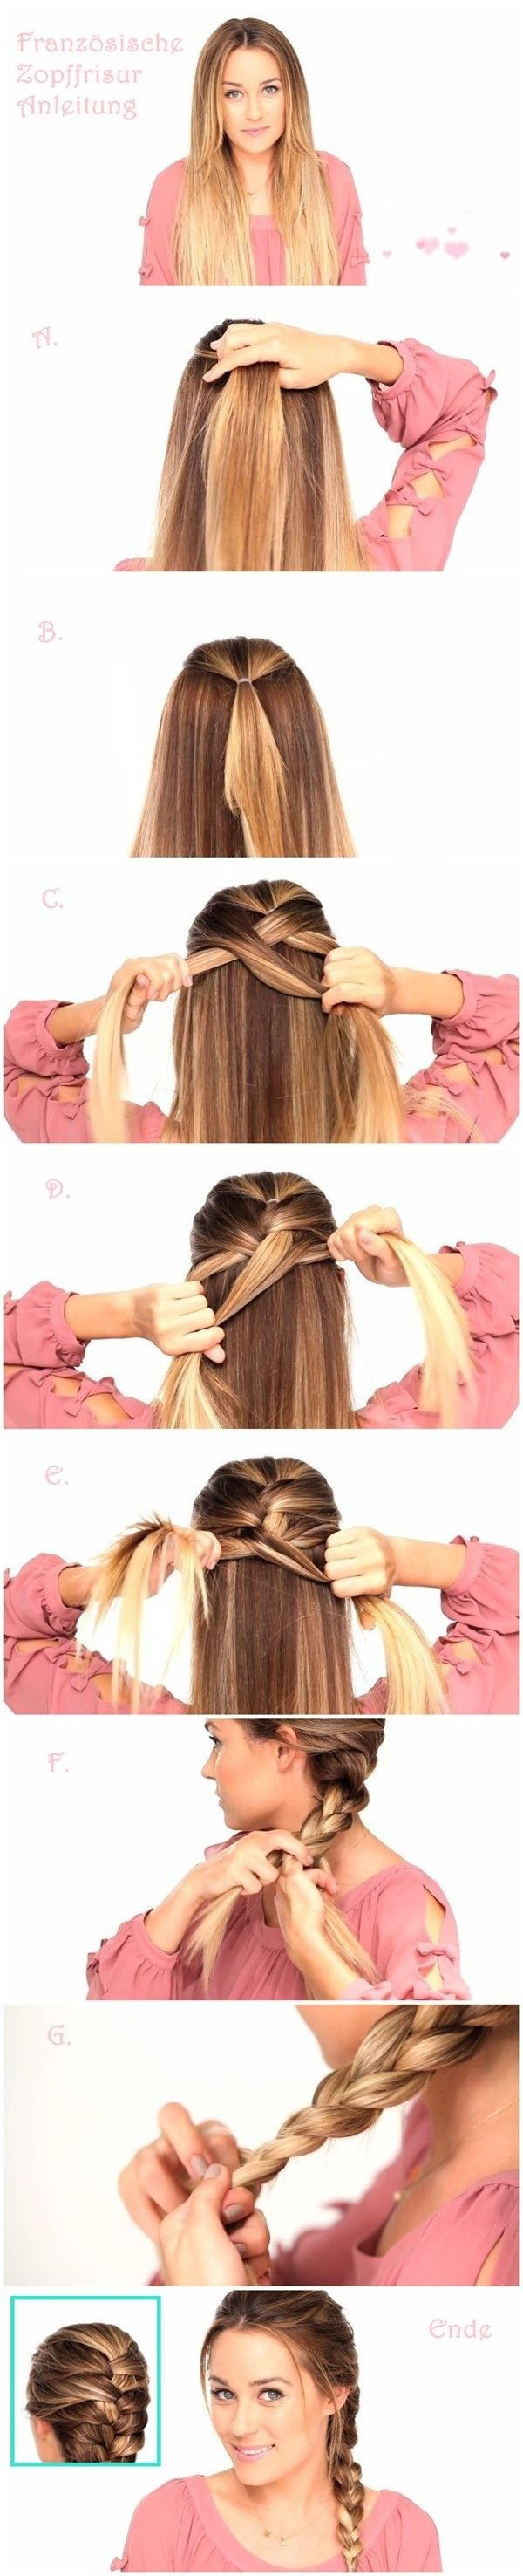 Astounding 1000 Ideas About Easy Braided Hairstyles On Pinterest Types Of Hairstyle Inspiration Daily Dogsangcom